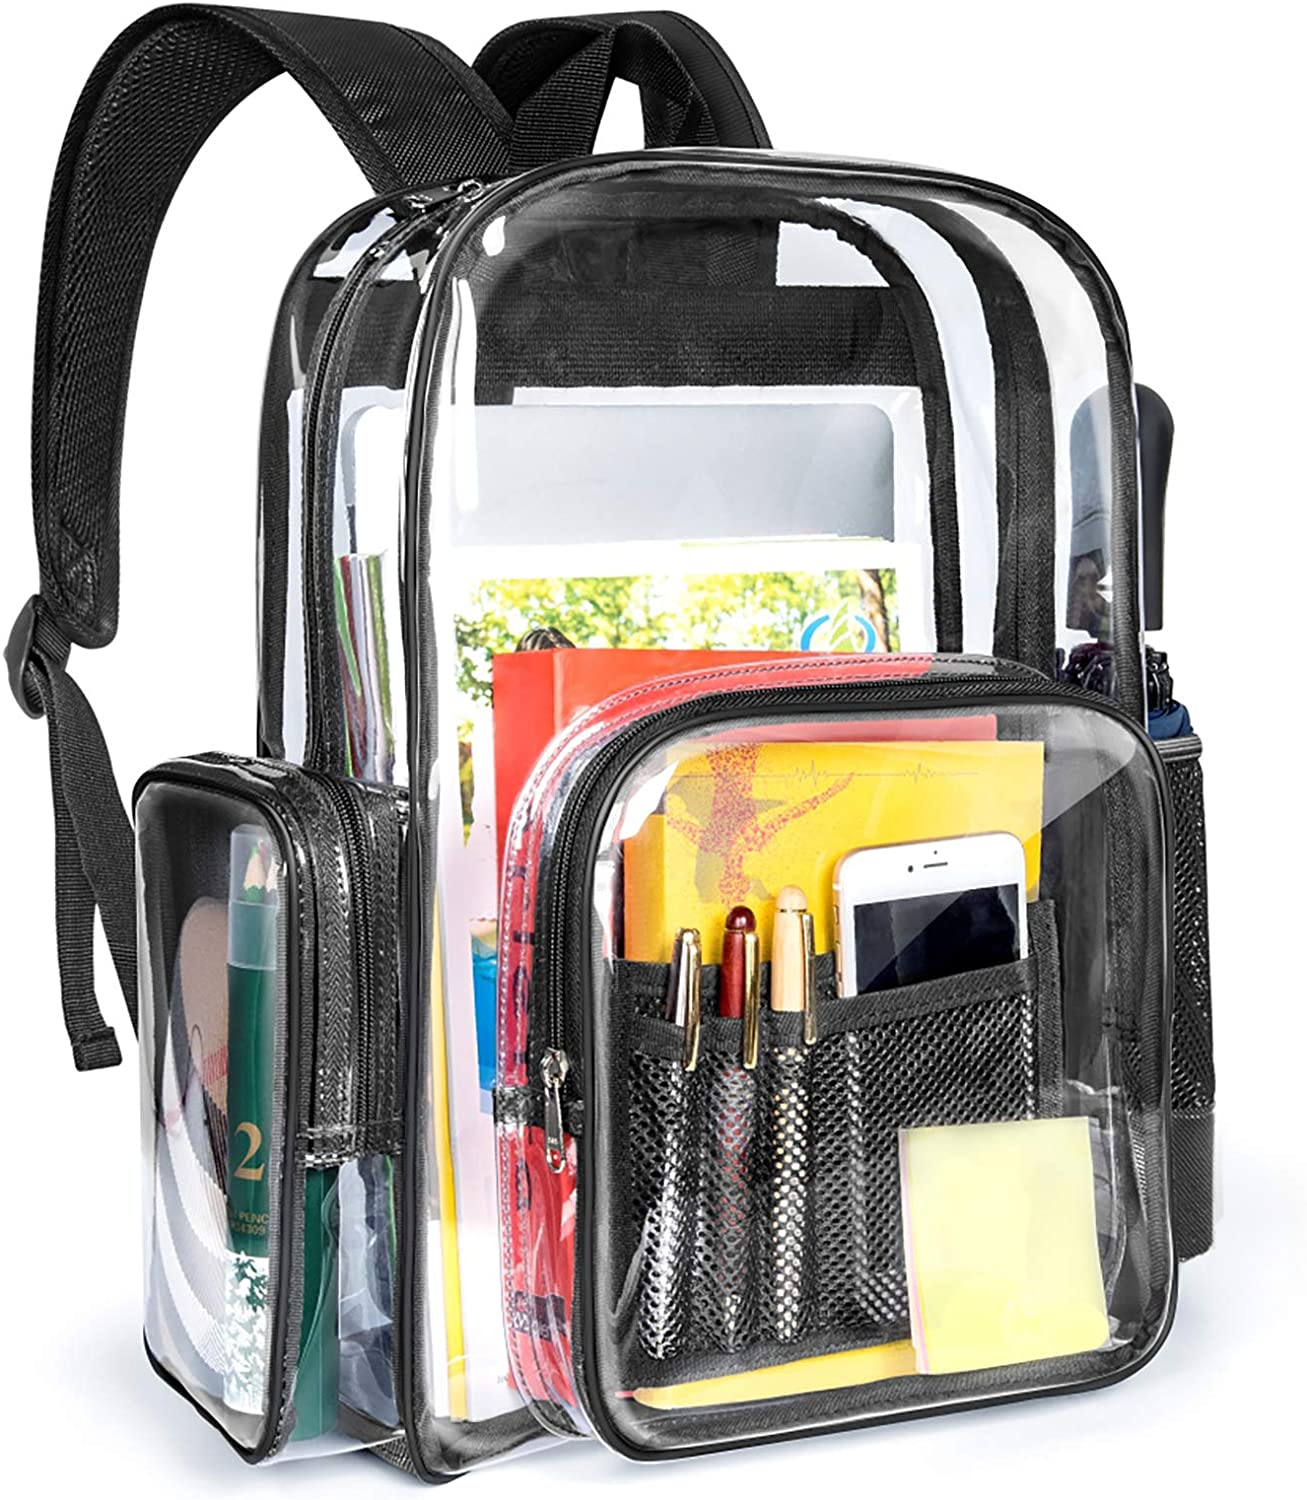 Clear Backpack, Packism Heavy Duty Clear Backpack for Adults with Reinforced Straps Large Clear Bookbag Waterproof Transparent Backpack for School, Security, Stadiums, Work